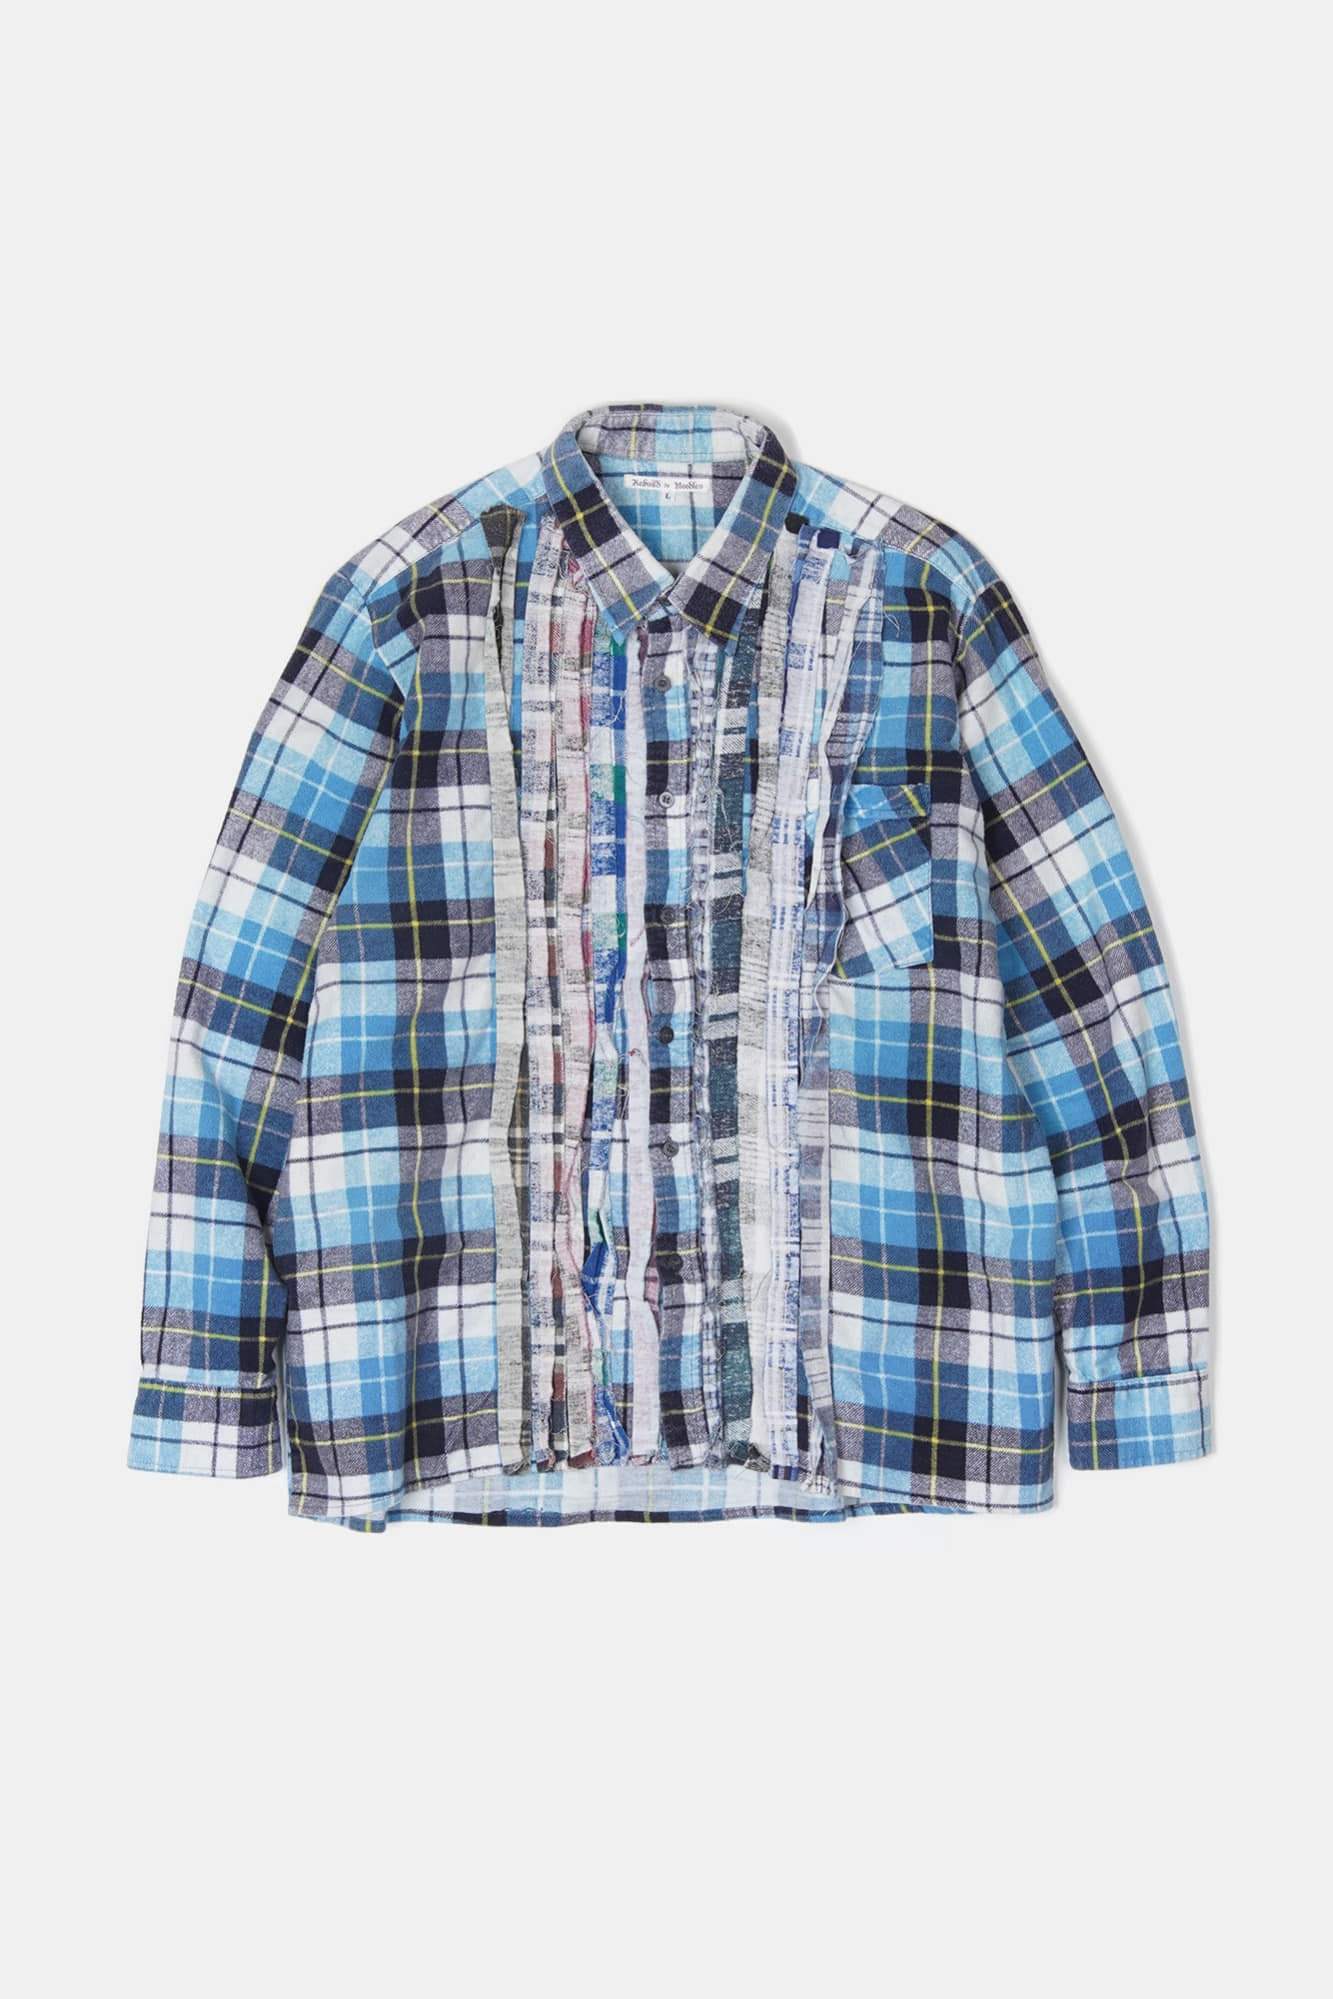 REBUILD BY NEEDLES Flannel Ribbon Shirt 5